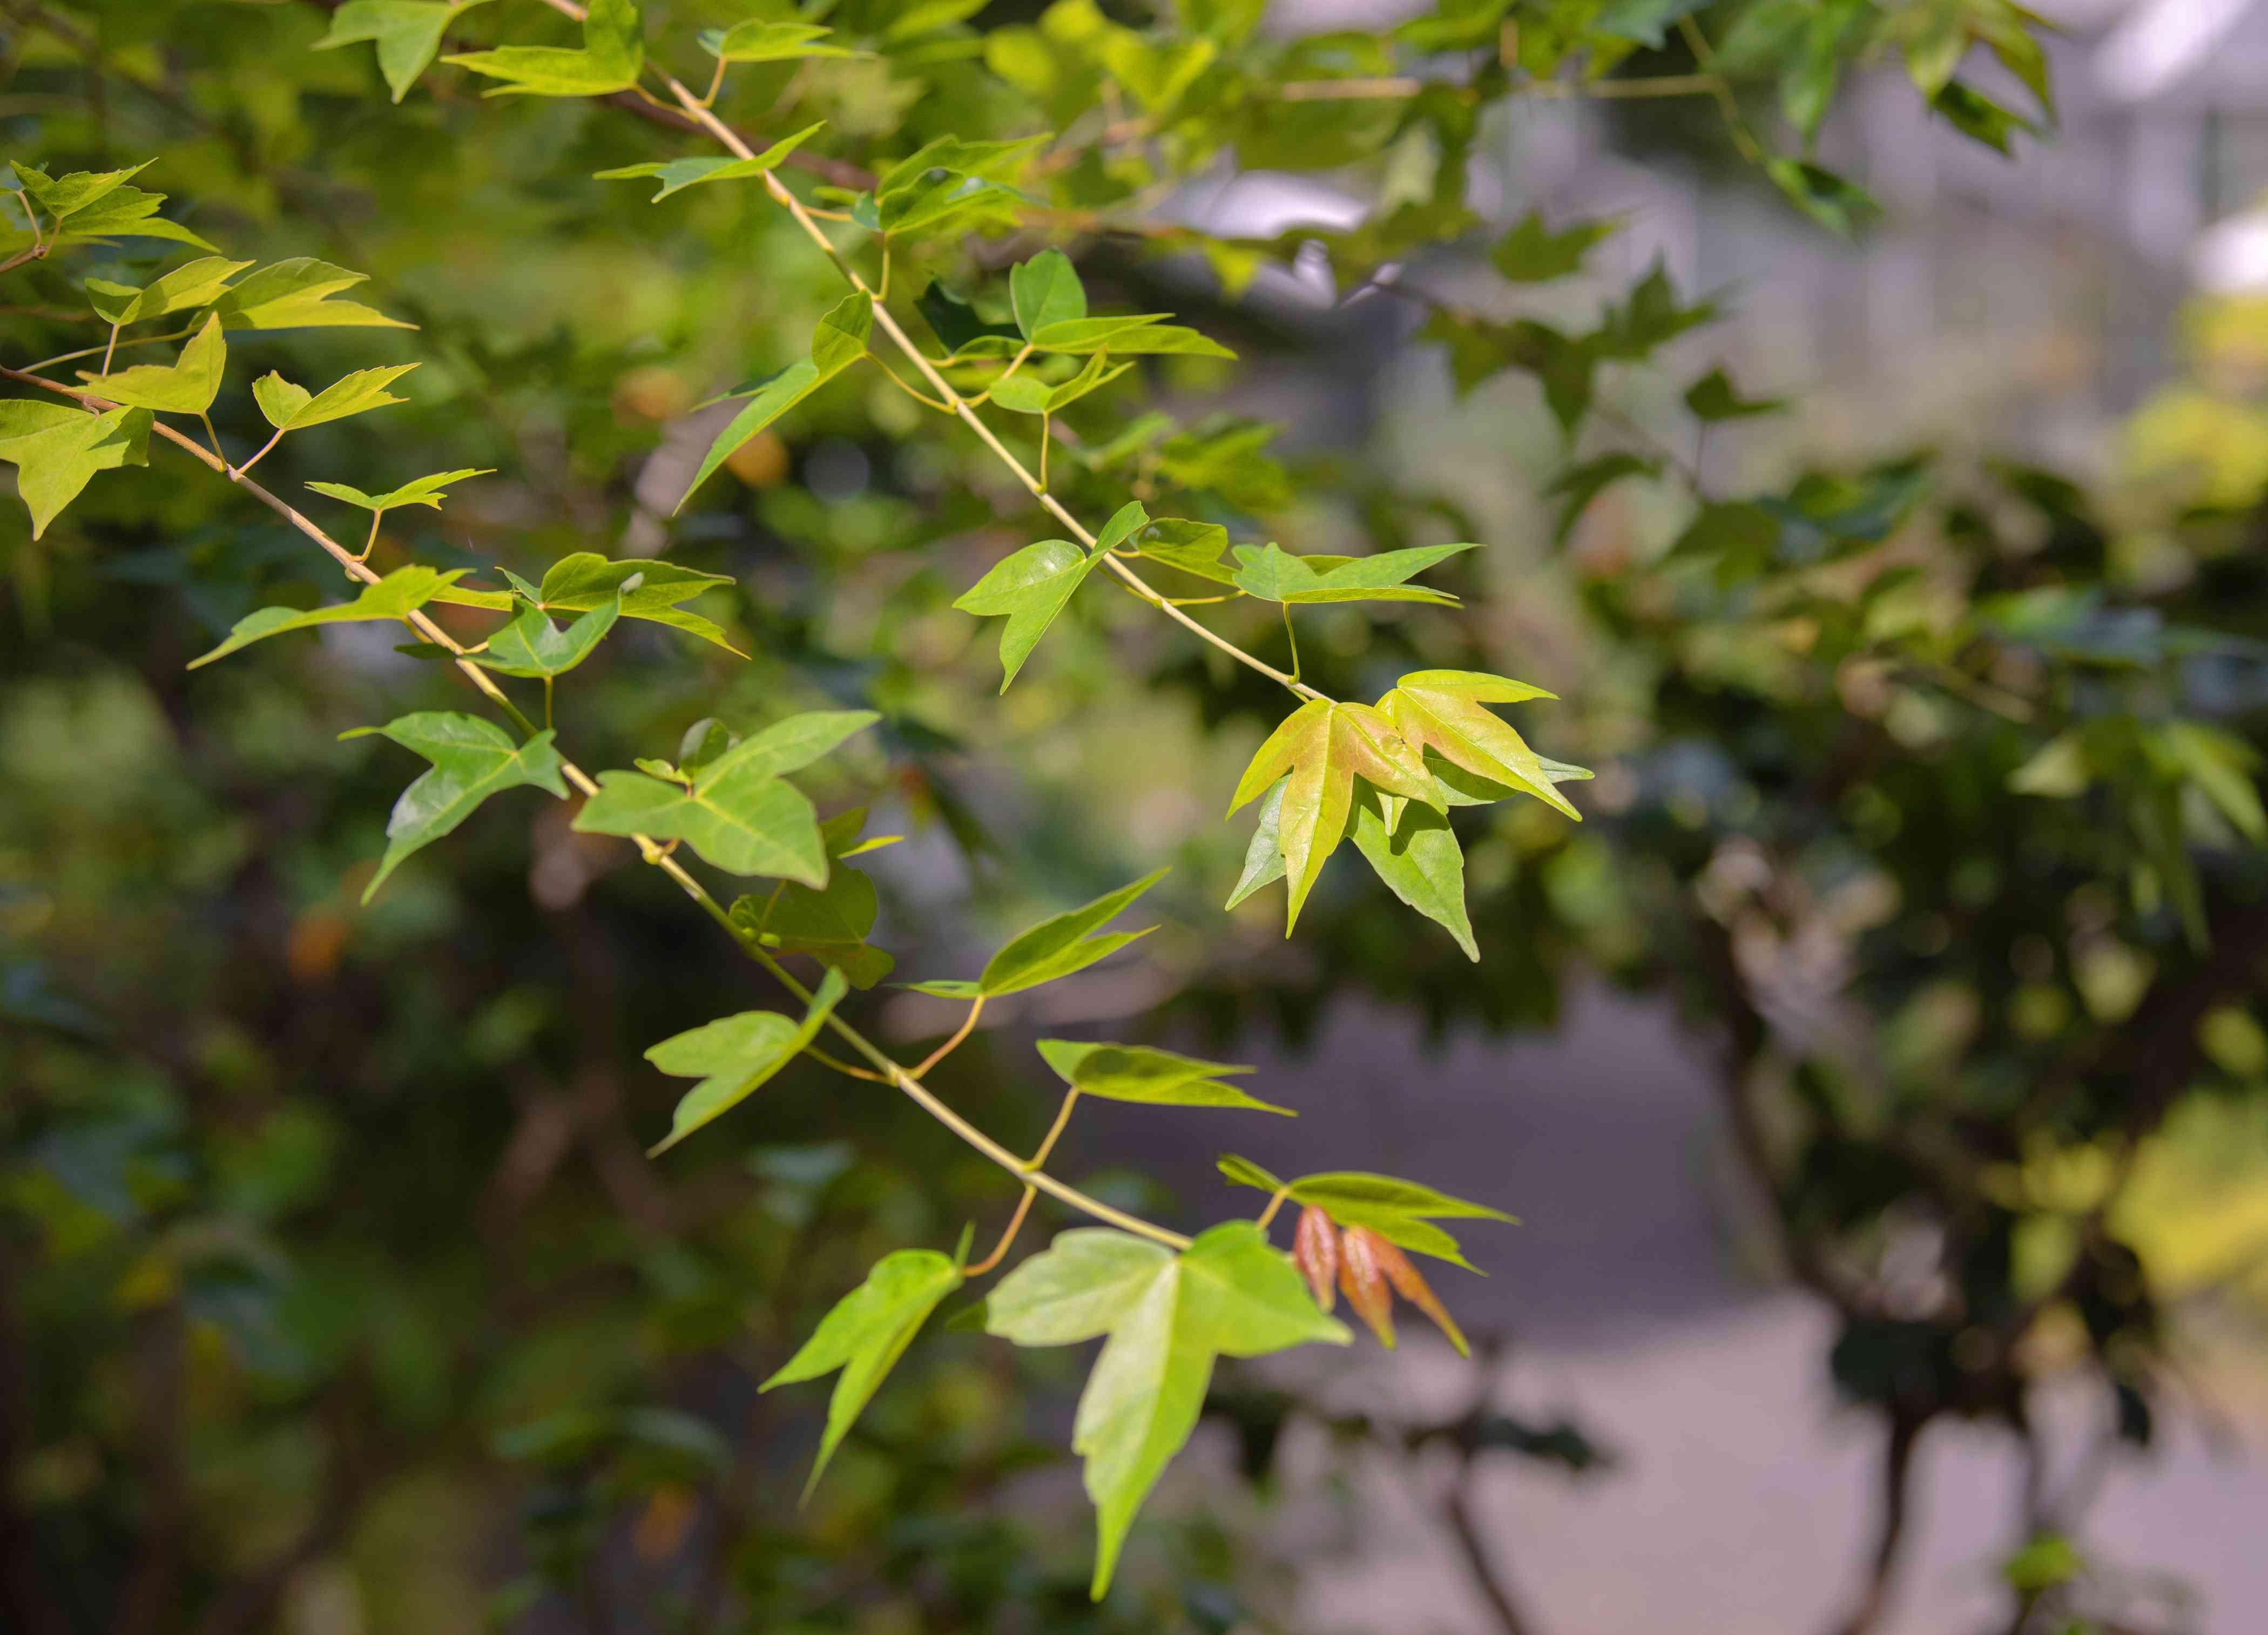 Trident maple tree branches with green and yellow-green three-lobed leaves hanging in sunlight